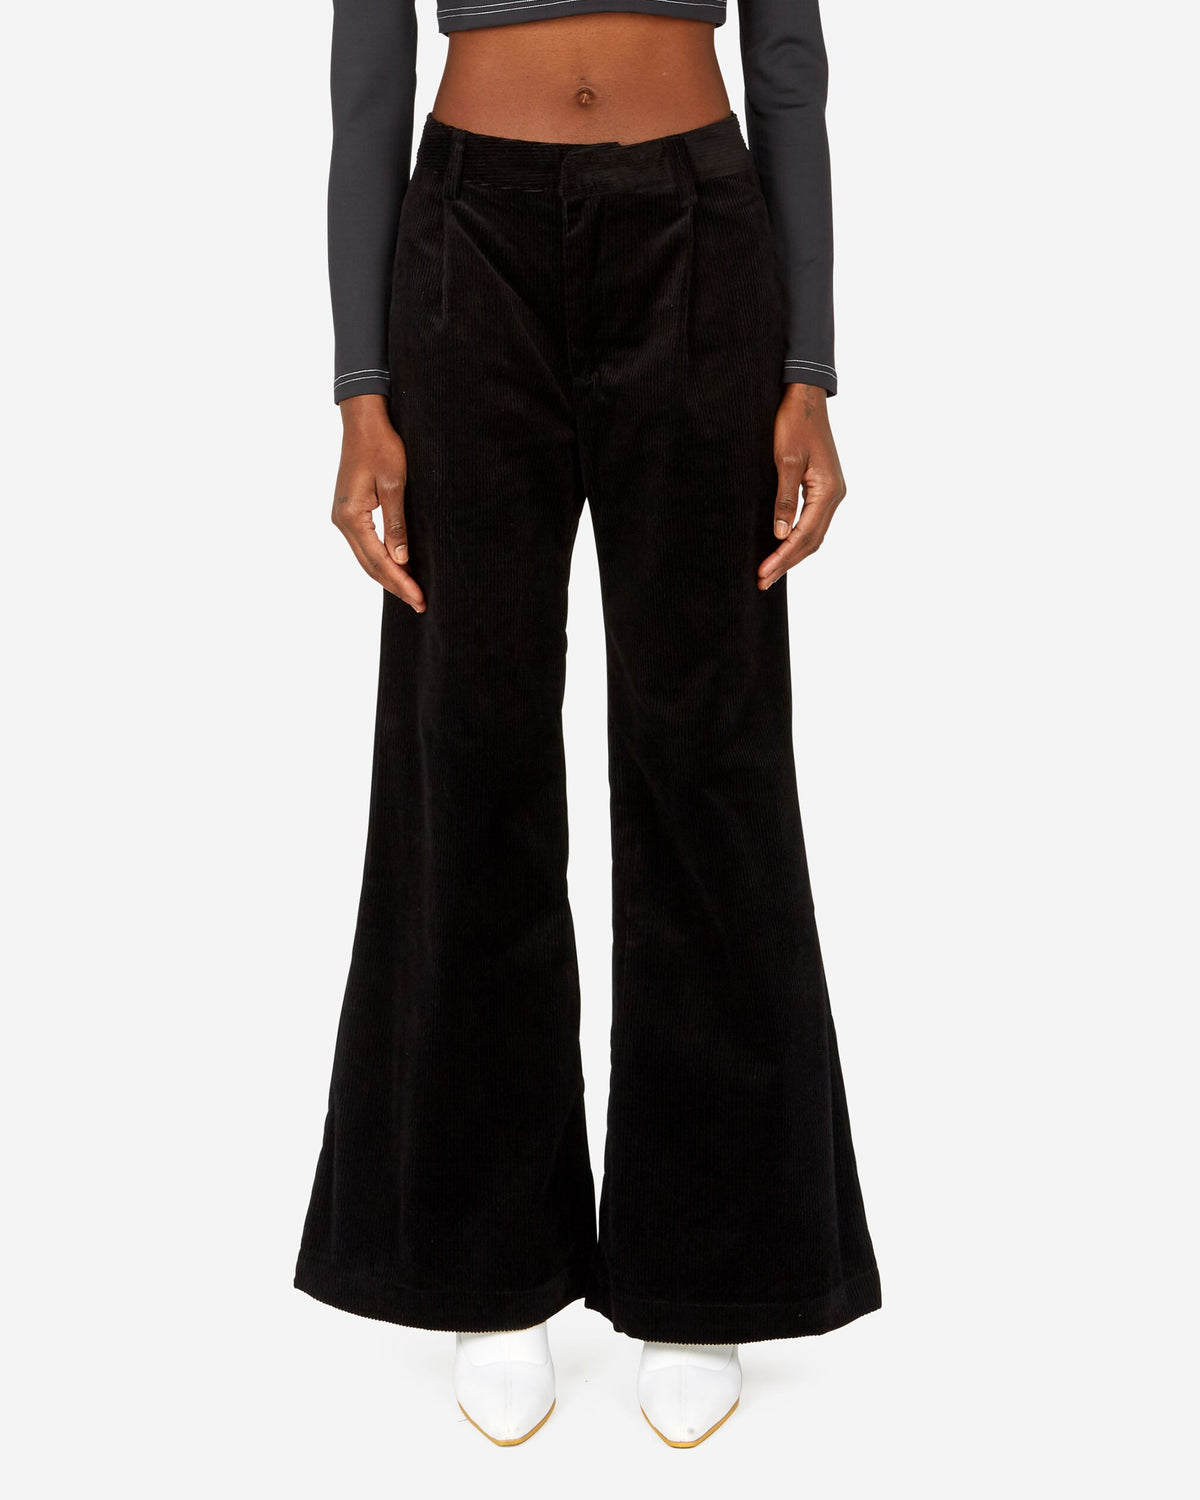 Flared Leg Corduroy Trouser